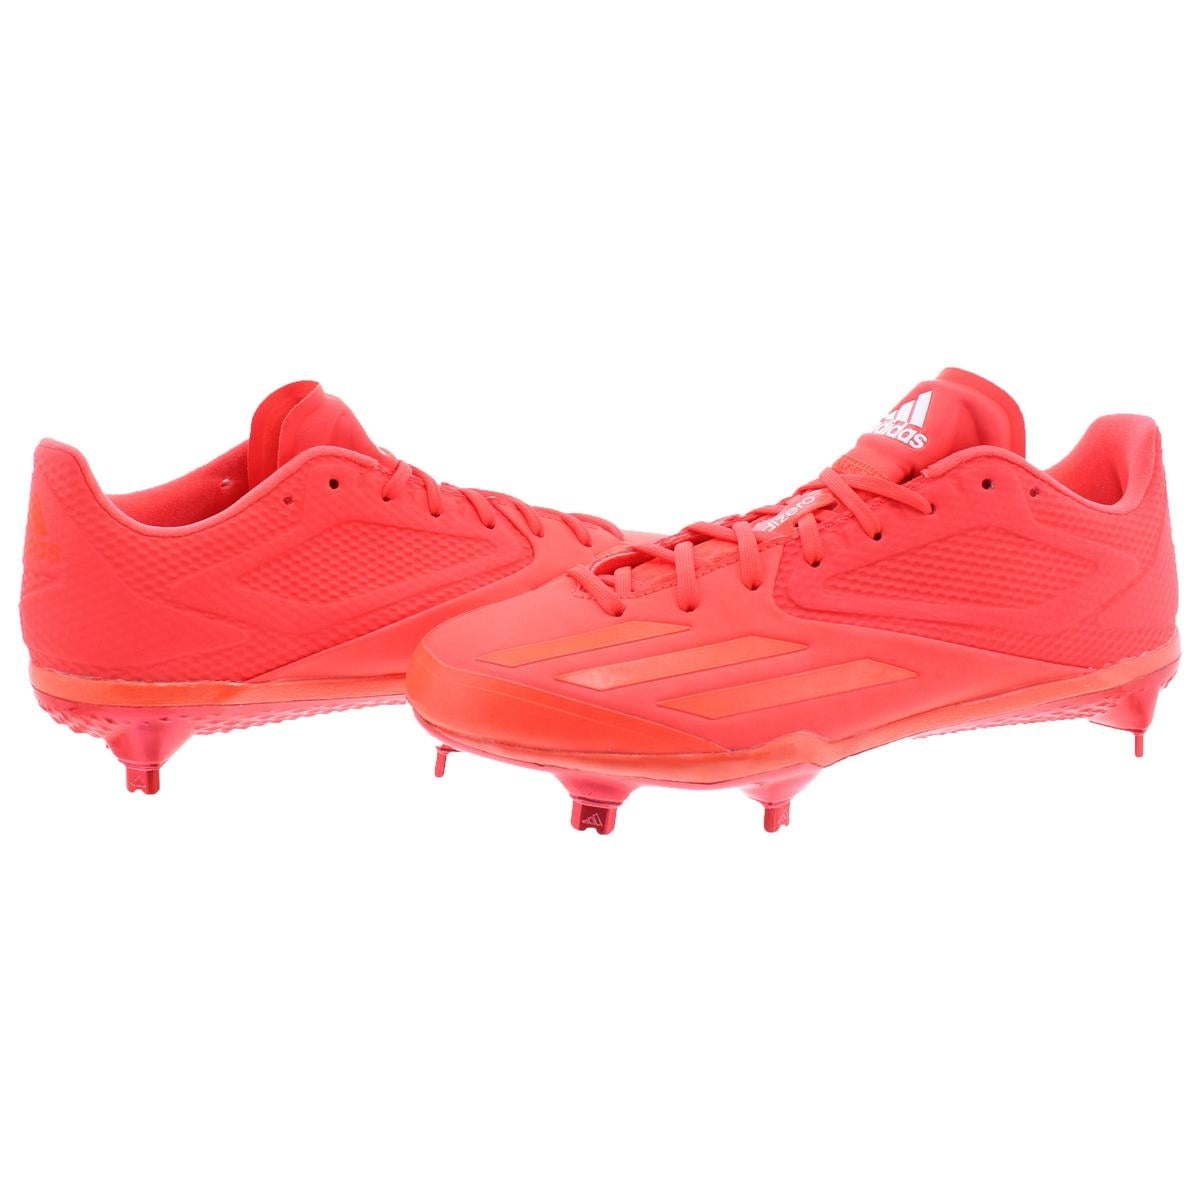 3204f59e22ba Shop Adidas Mens Adizero Afterburner 3 Cleats Baseball Lightweight - Free  Shipping On Orders Over $45 - Overstock - 22129133